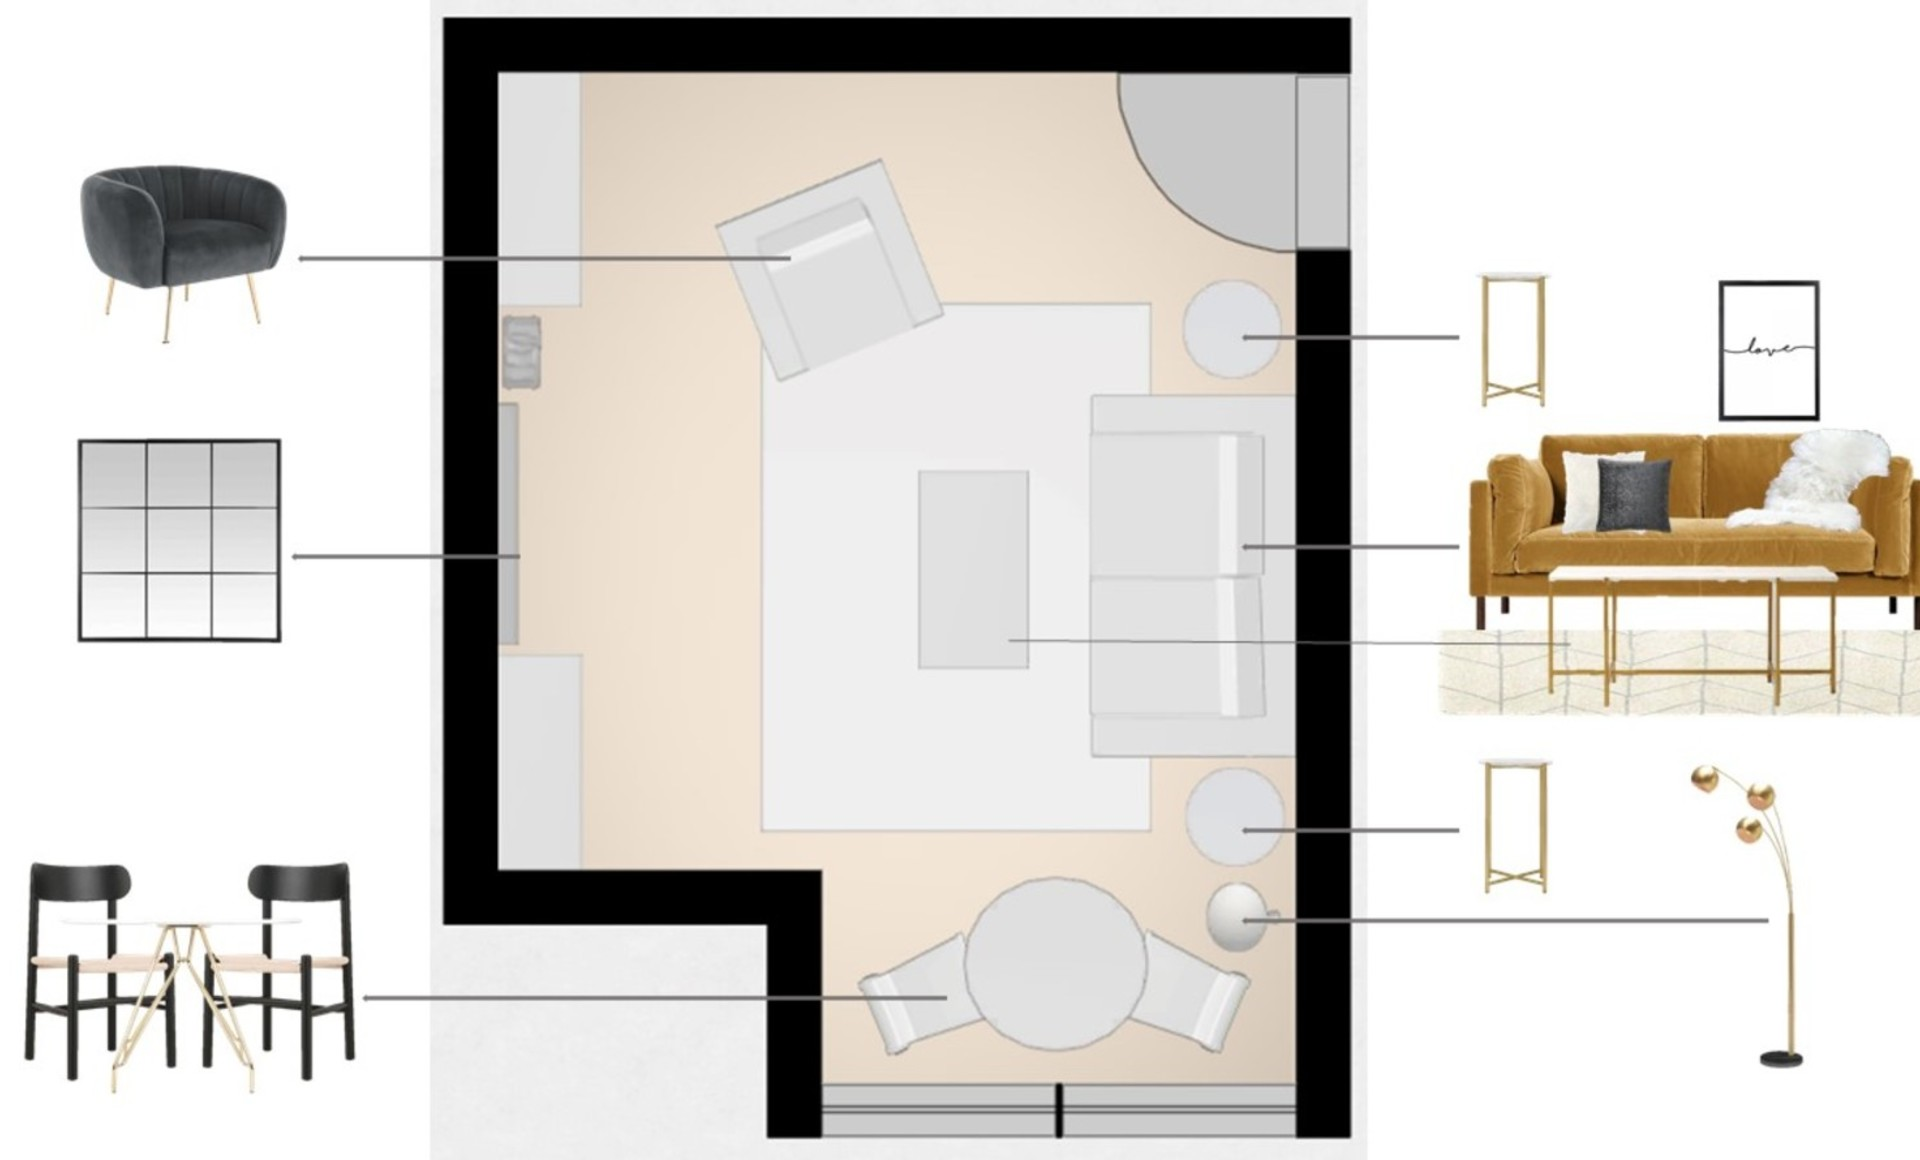 Floor plan showing a living room layout with a small dining area to make the small room multi-functional